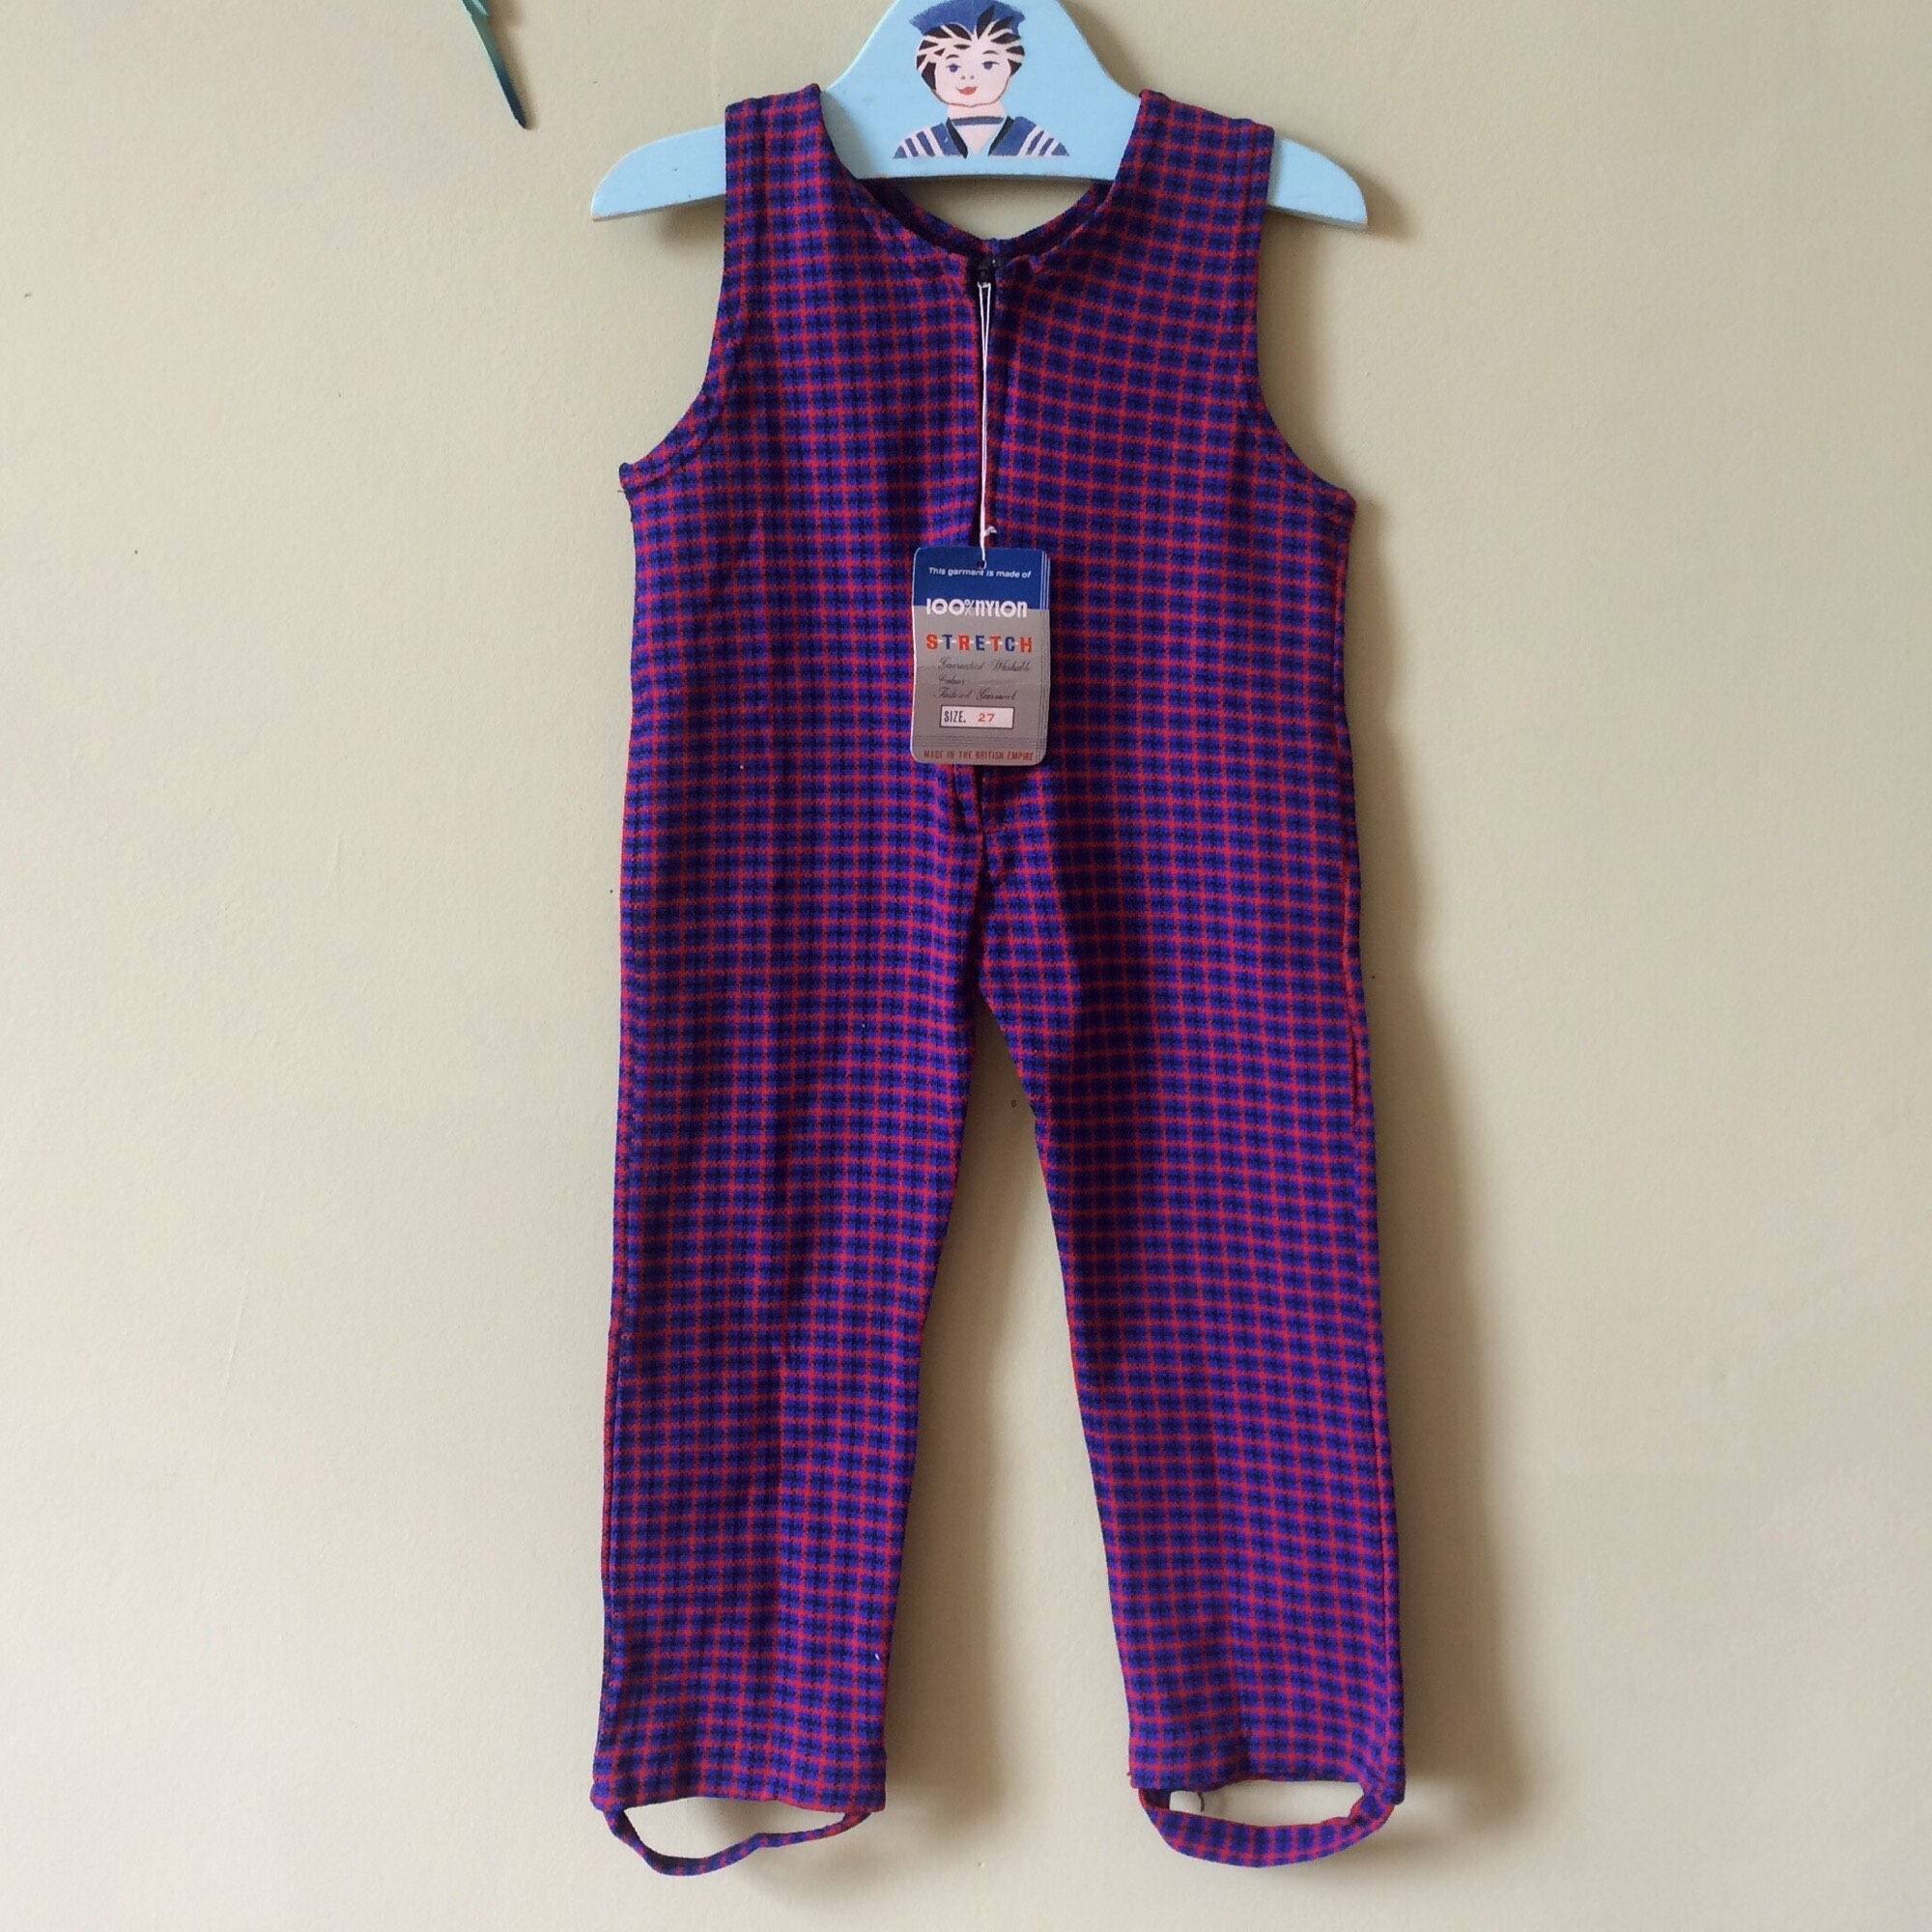 Vintage baby romper  jumpsuit  dungarees. Blue and red check. Zip front. Toddler. Boy or girl. 1970s Approx age 18 months  age 24 months